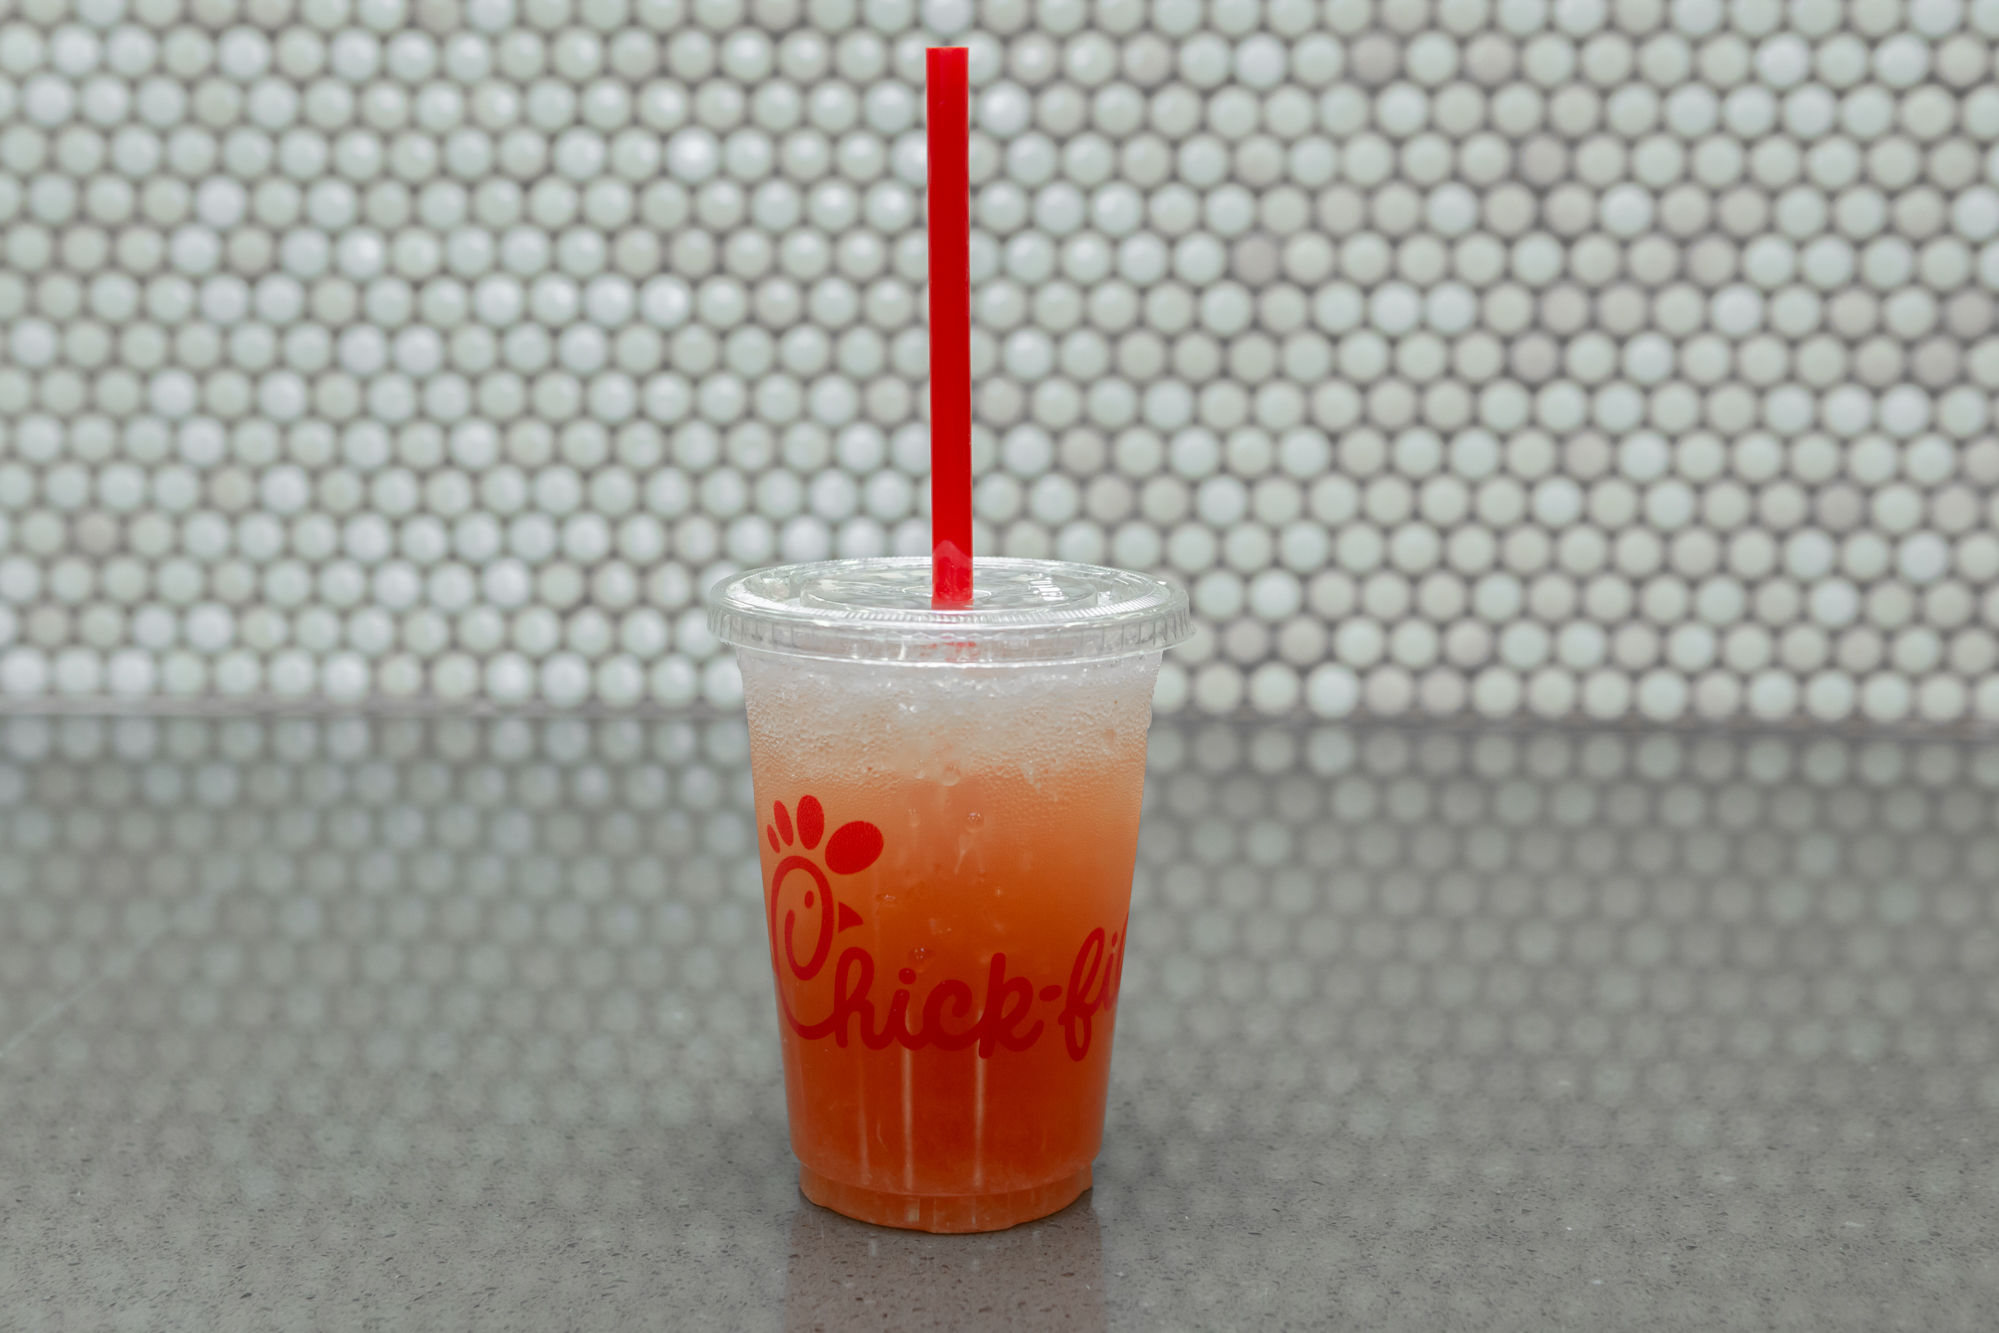 WATCH: Chick-fil-A Debuts a New Lemonade Flavor